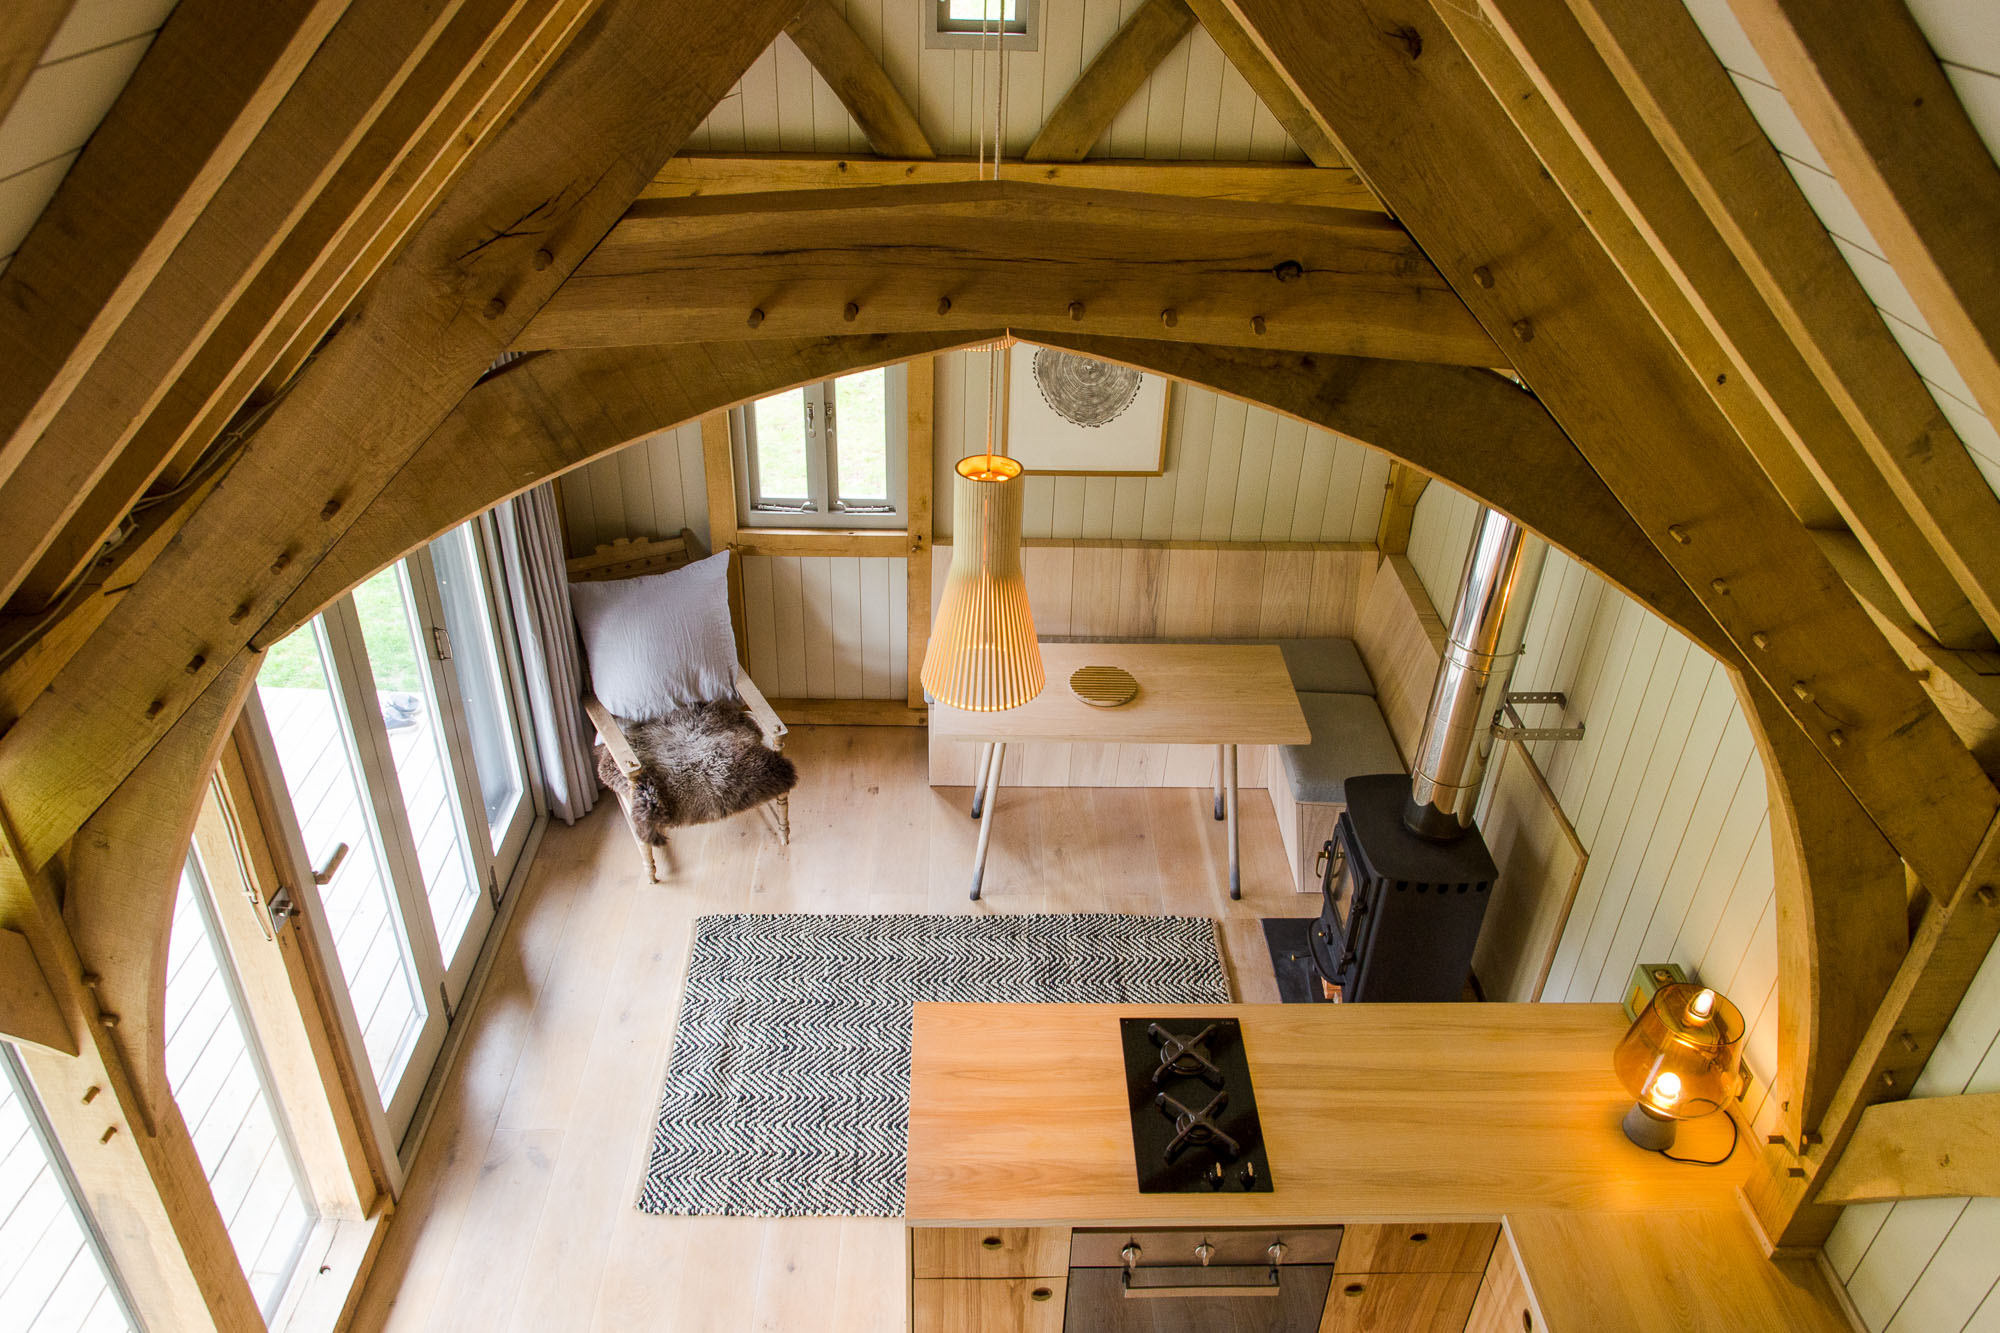 off grid wooden oak framed cabin interior with built on kitchen and living area with wood burning stove